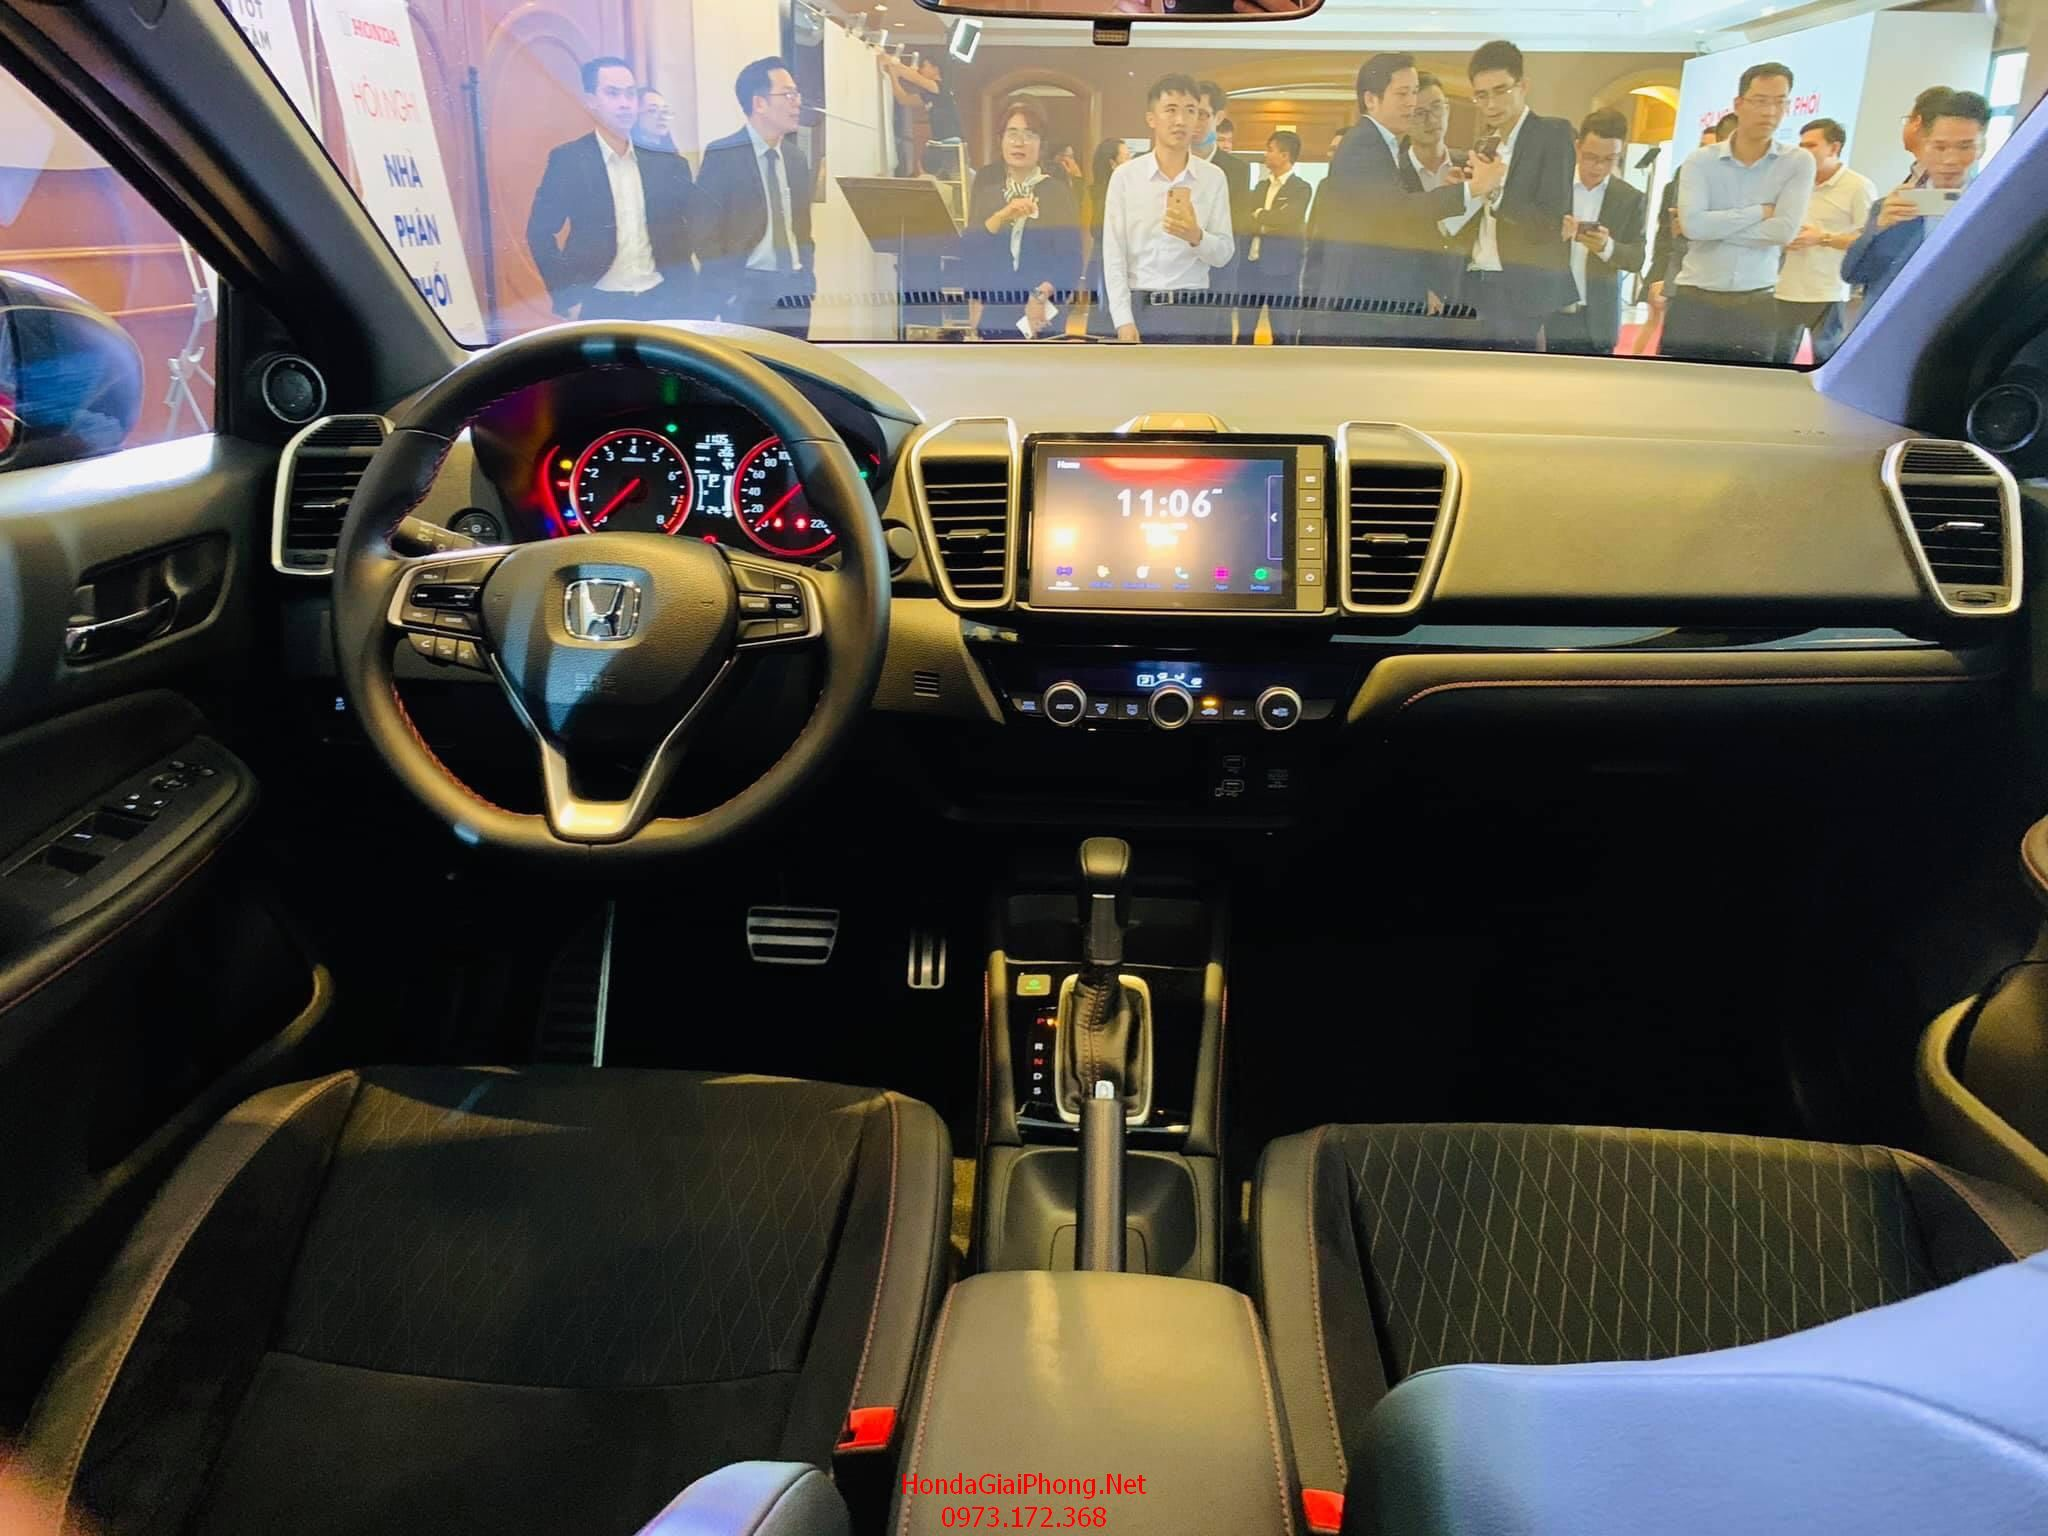 C07 noi that xe honda city 2021 rs viet nam